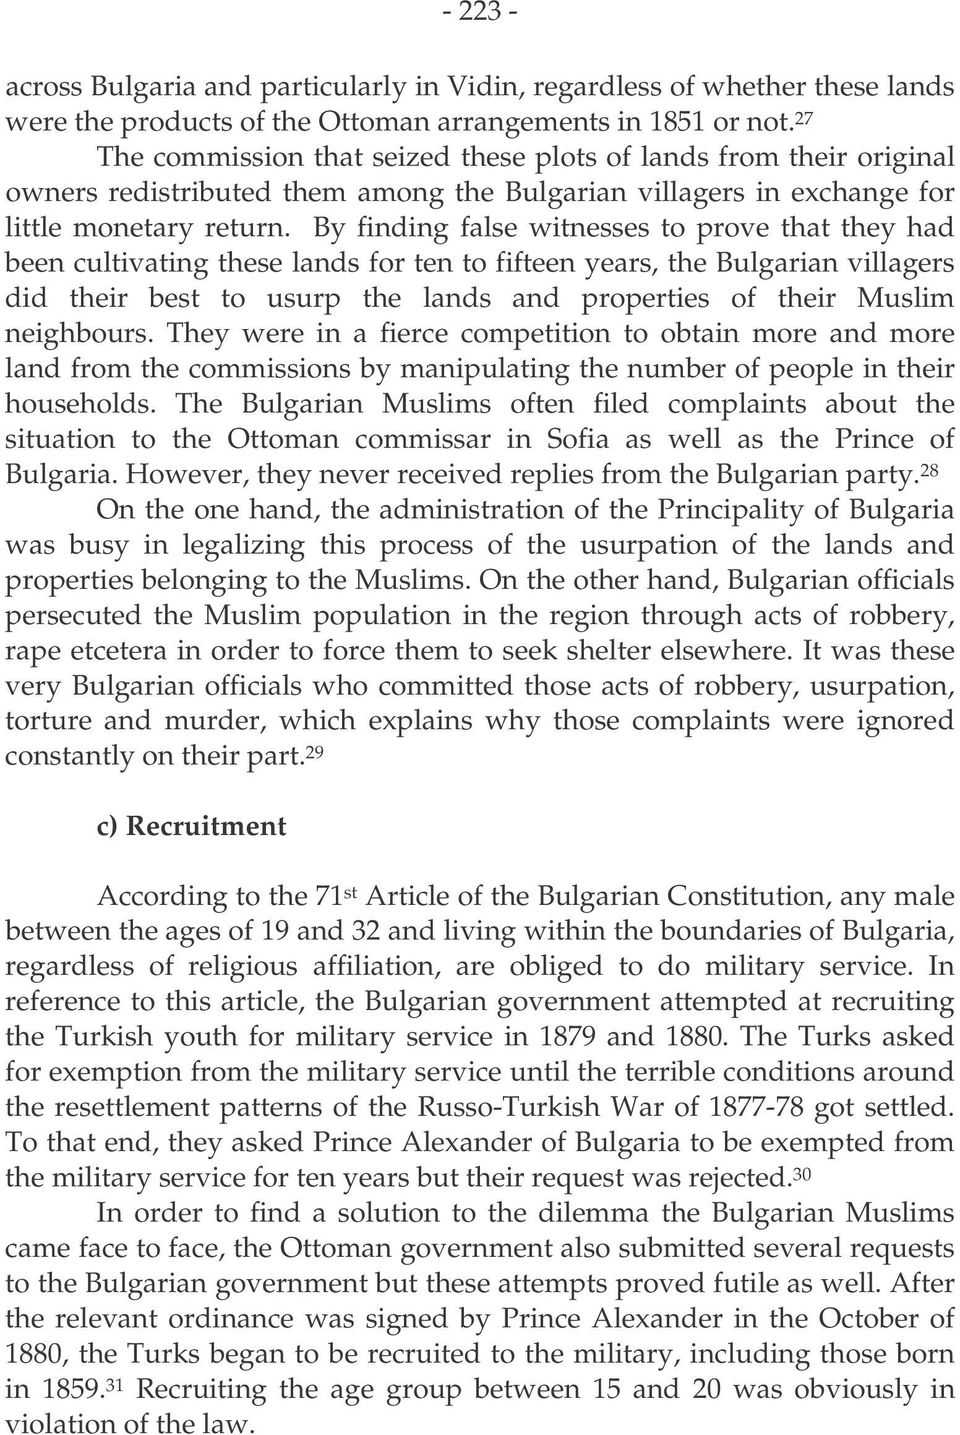 By finding false witnesses to prove that they had been cultivating these lands for ten to fifteen years, the Bulgarian villagers did their best to usurp the lands and properties of their Muslim